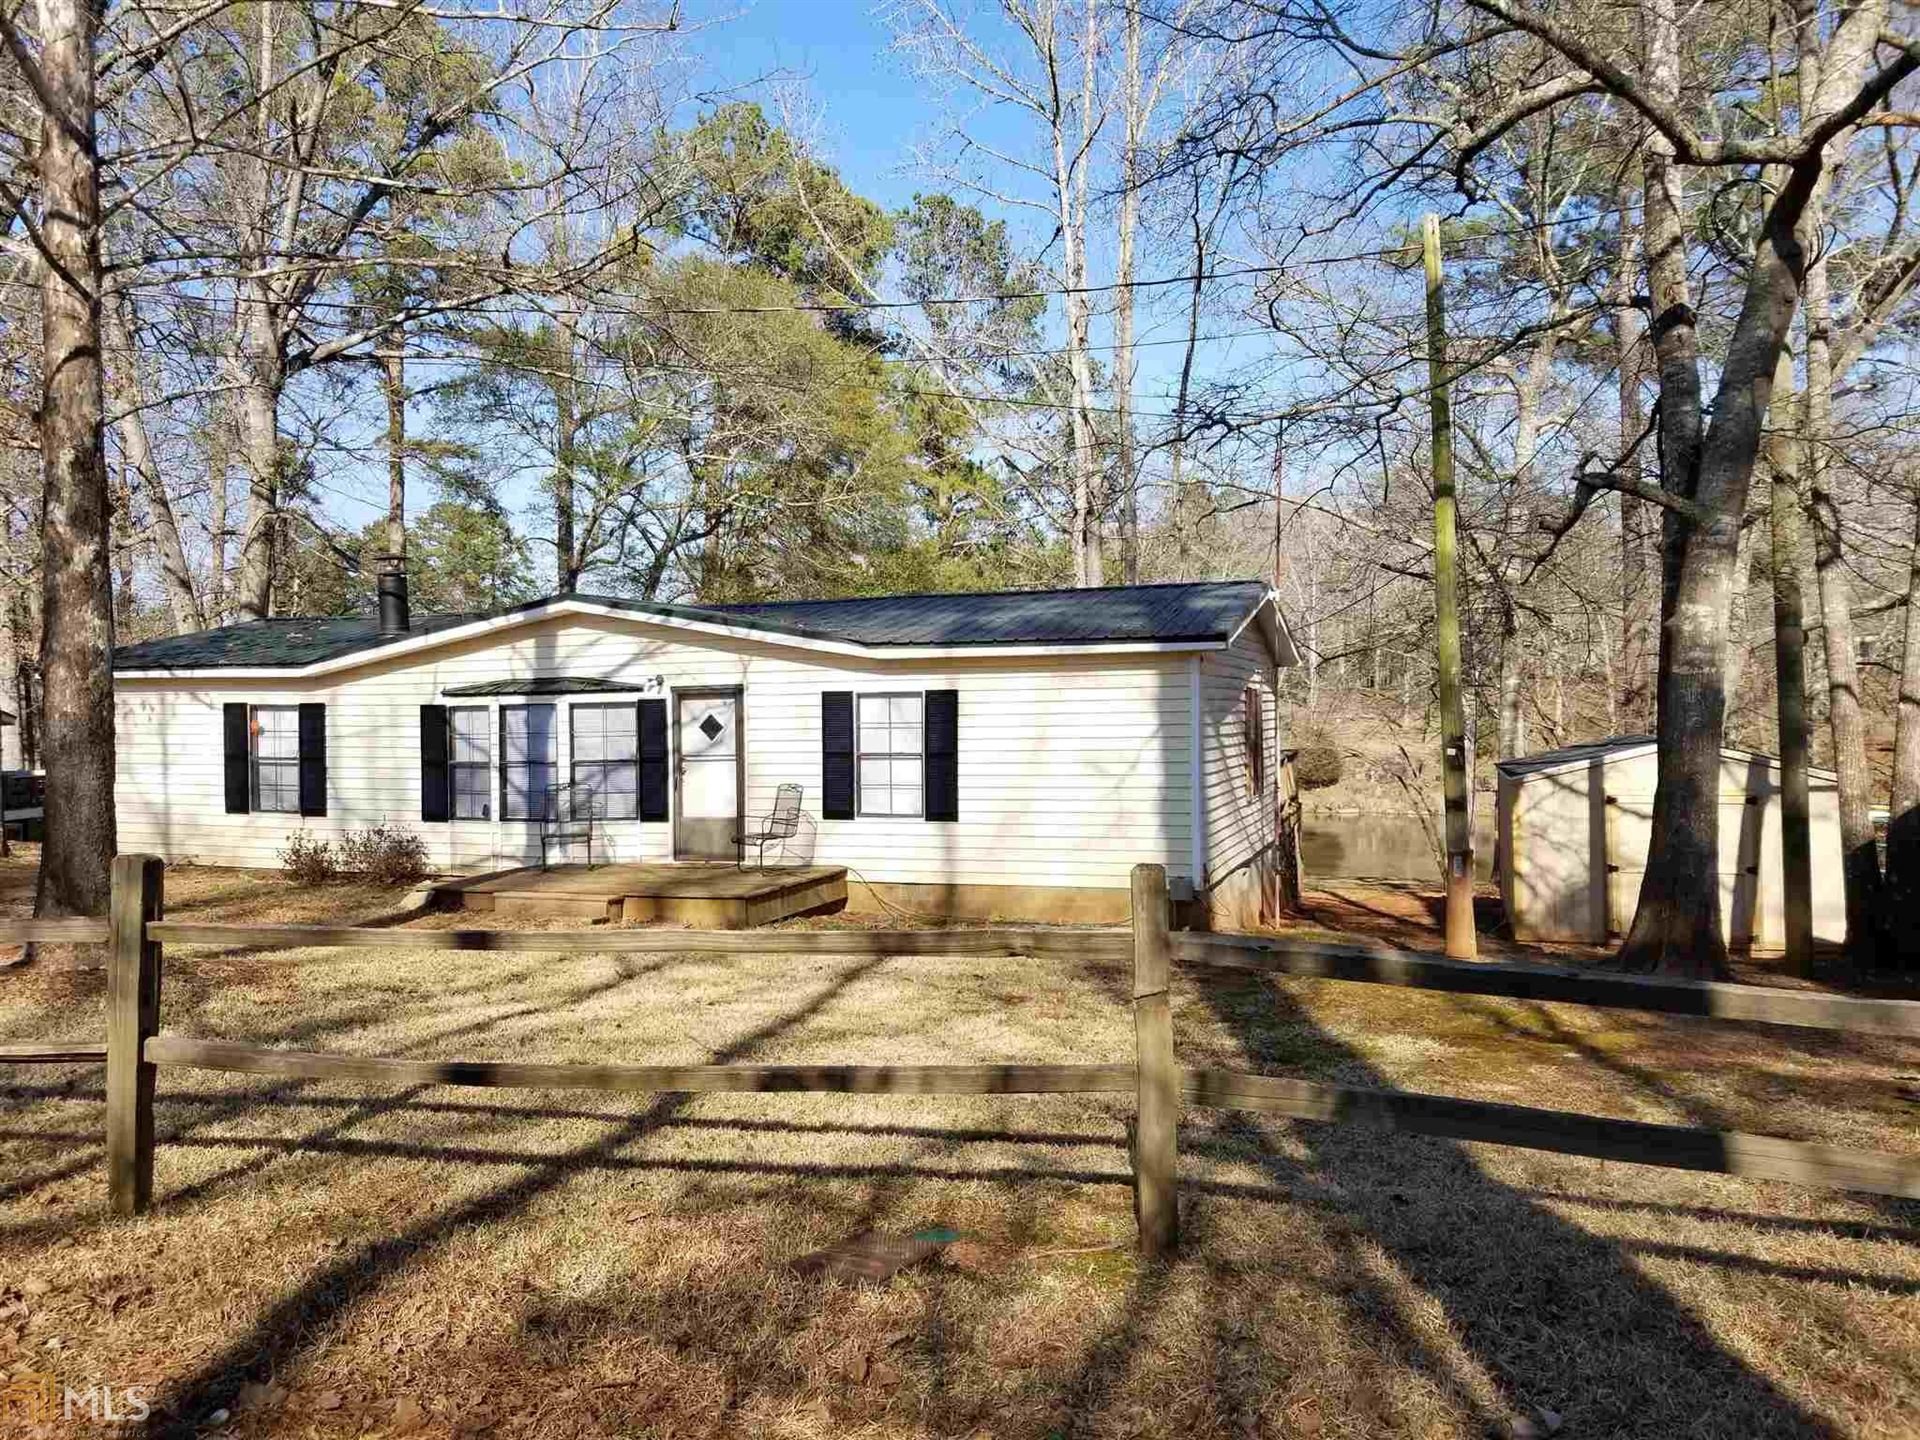 118 NW Cedar Point Dr, Milledgeville, GA 31061 - MLS#: 8934990